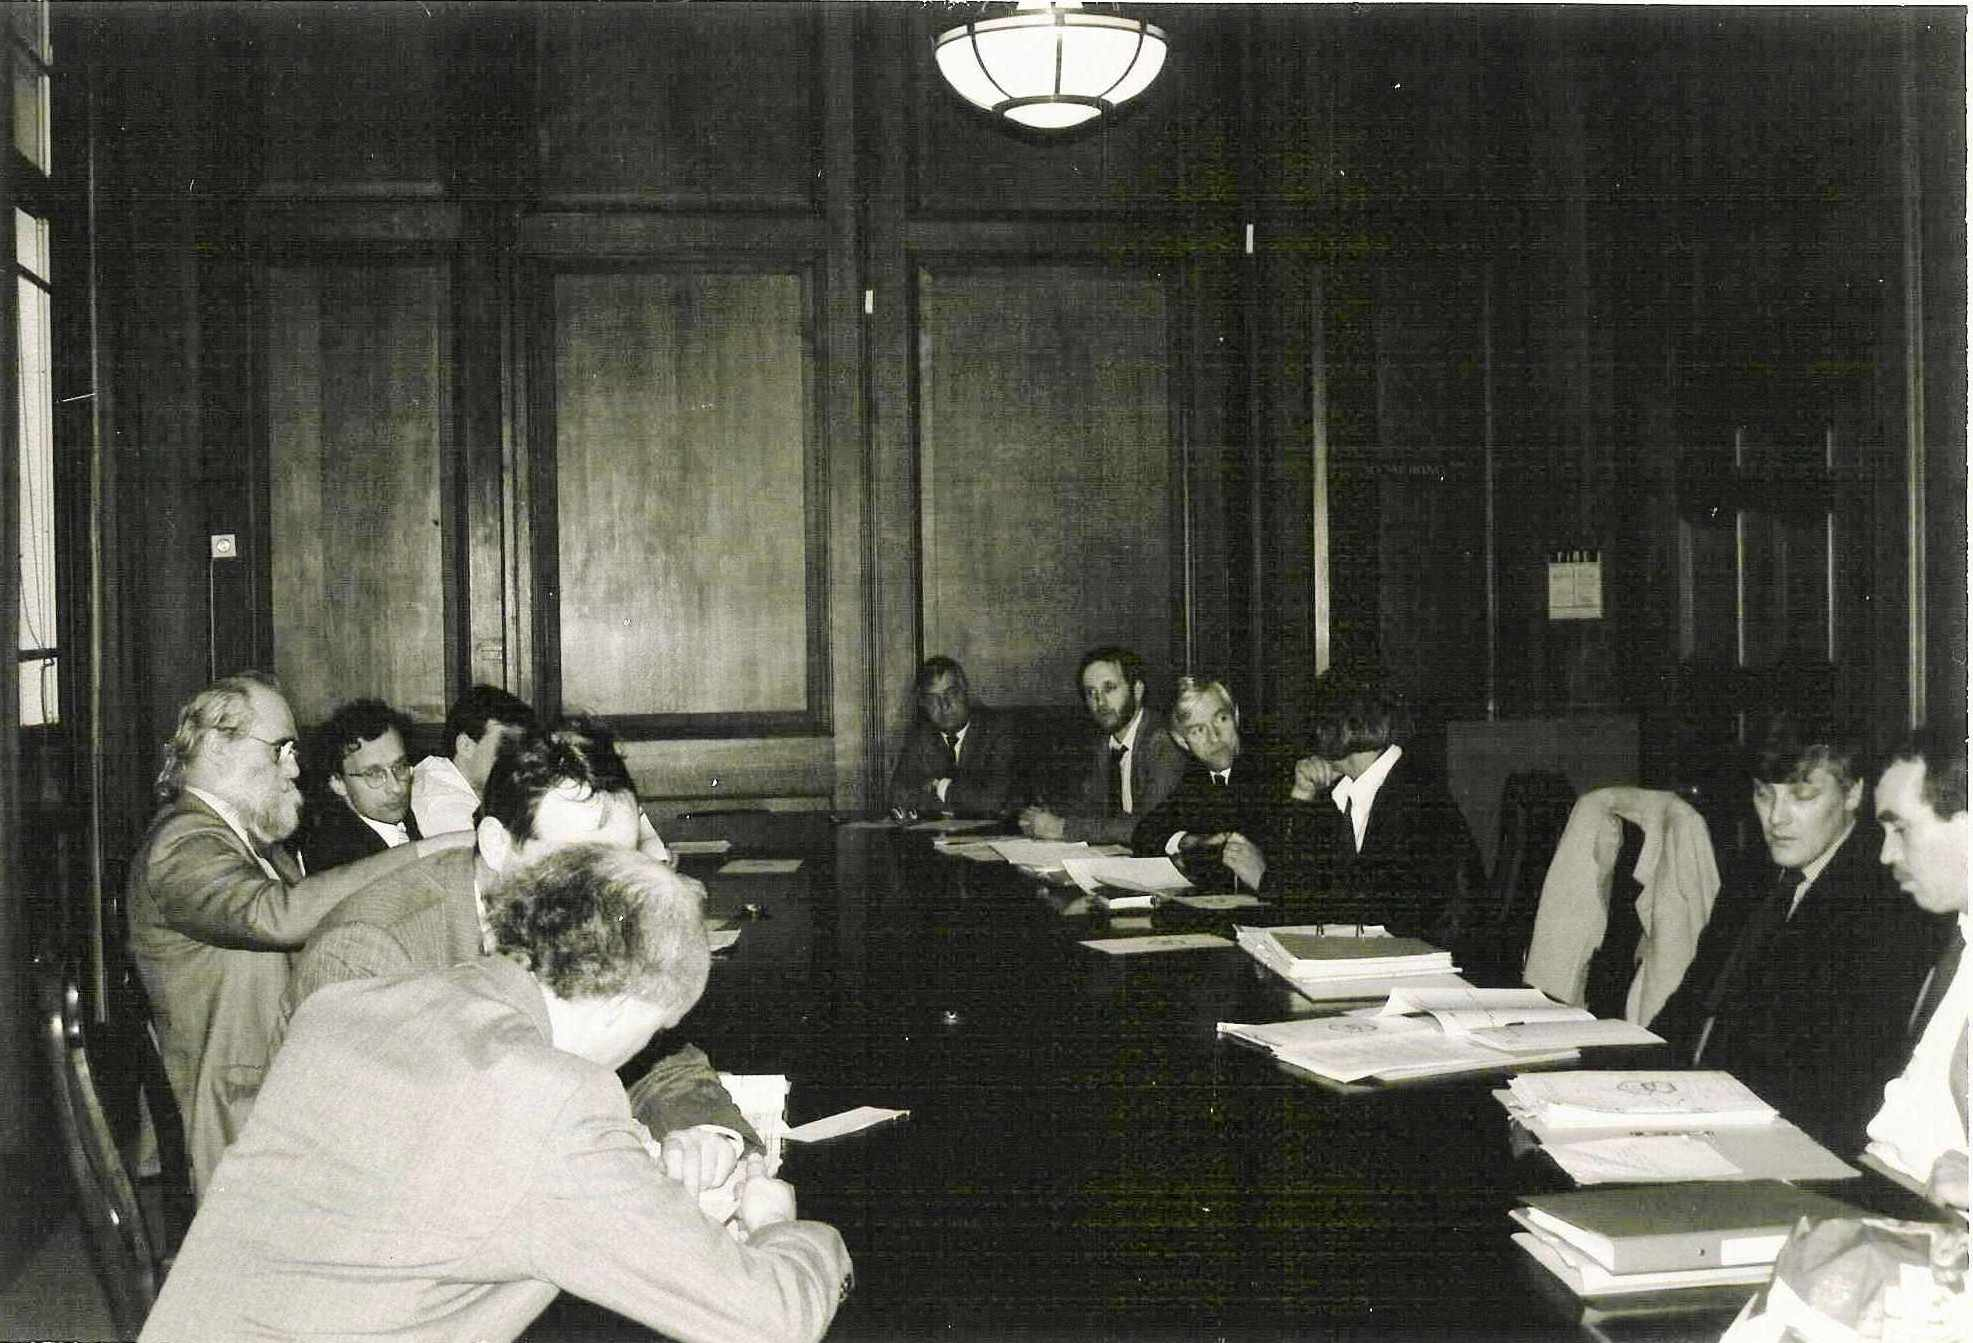 The first meeting of Camden Council at which restoring the Sundial Pillar was discussed, 1985